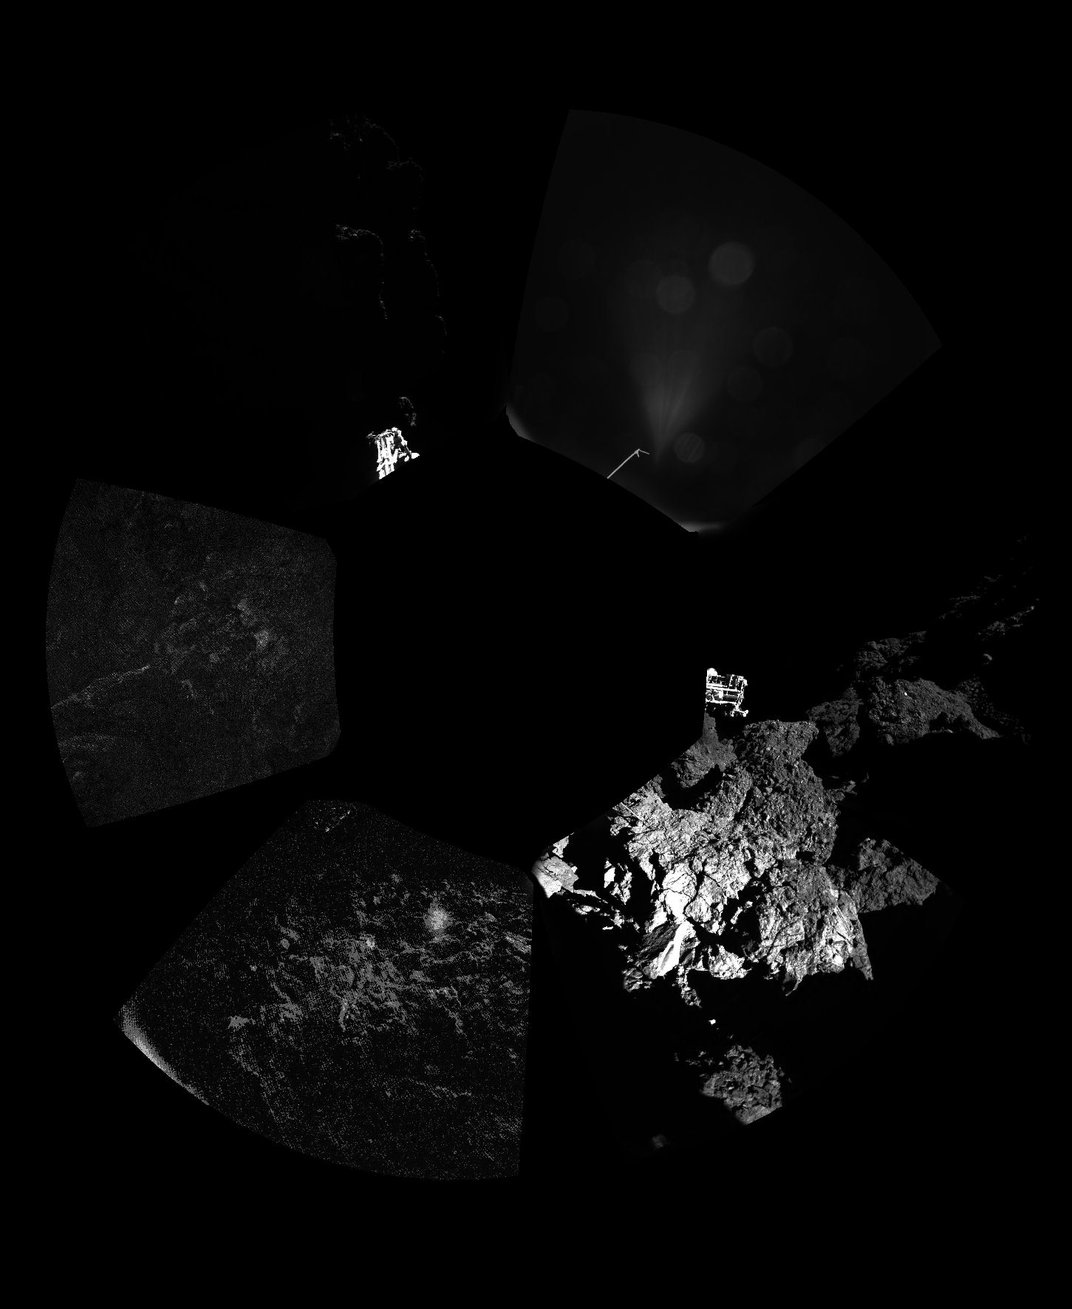 The first panoramic image from the surface of a comet, unprocessed, shows a 360 degree view around Philae -- the lander's feet are visible in some frames, credit: ESA/Rosetta/Philae/CIVA